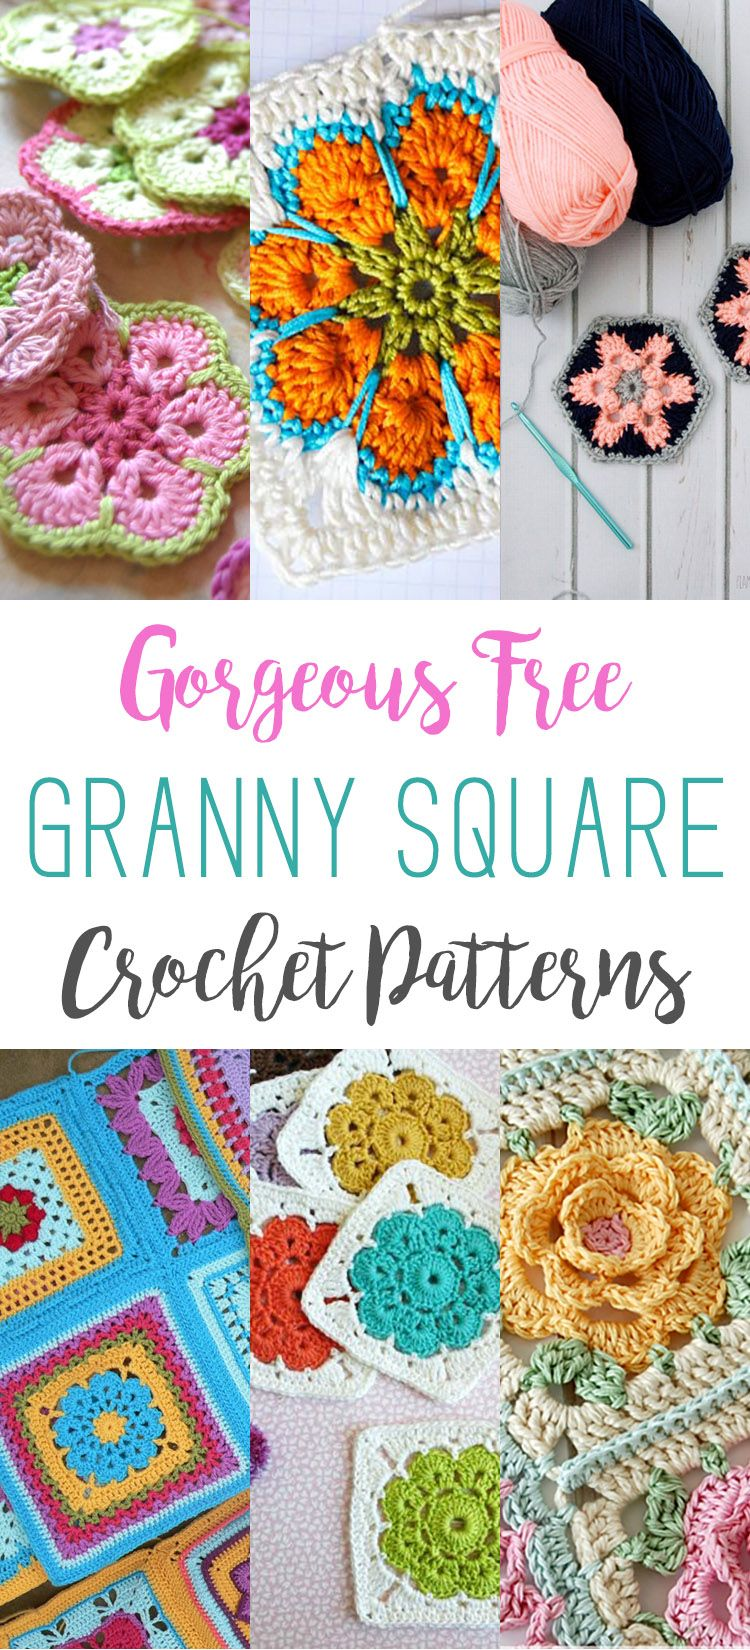 Gorgeous Free Granny Square Crochet Patterns | Granny square crochet ...